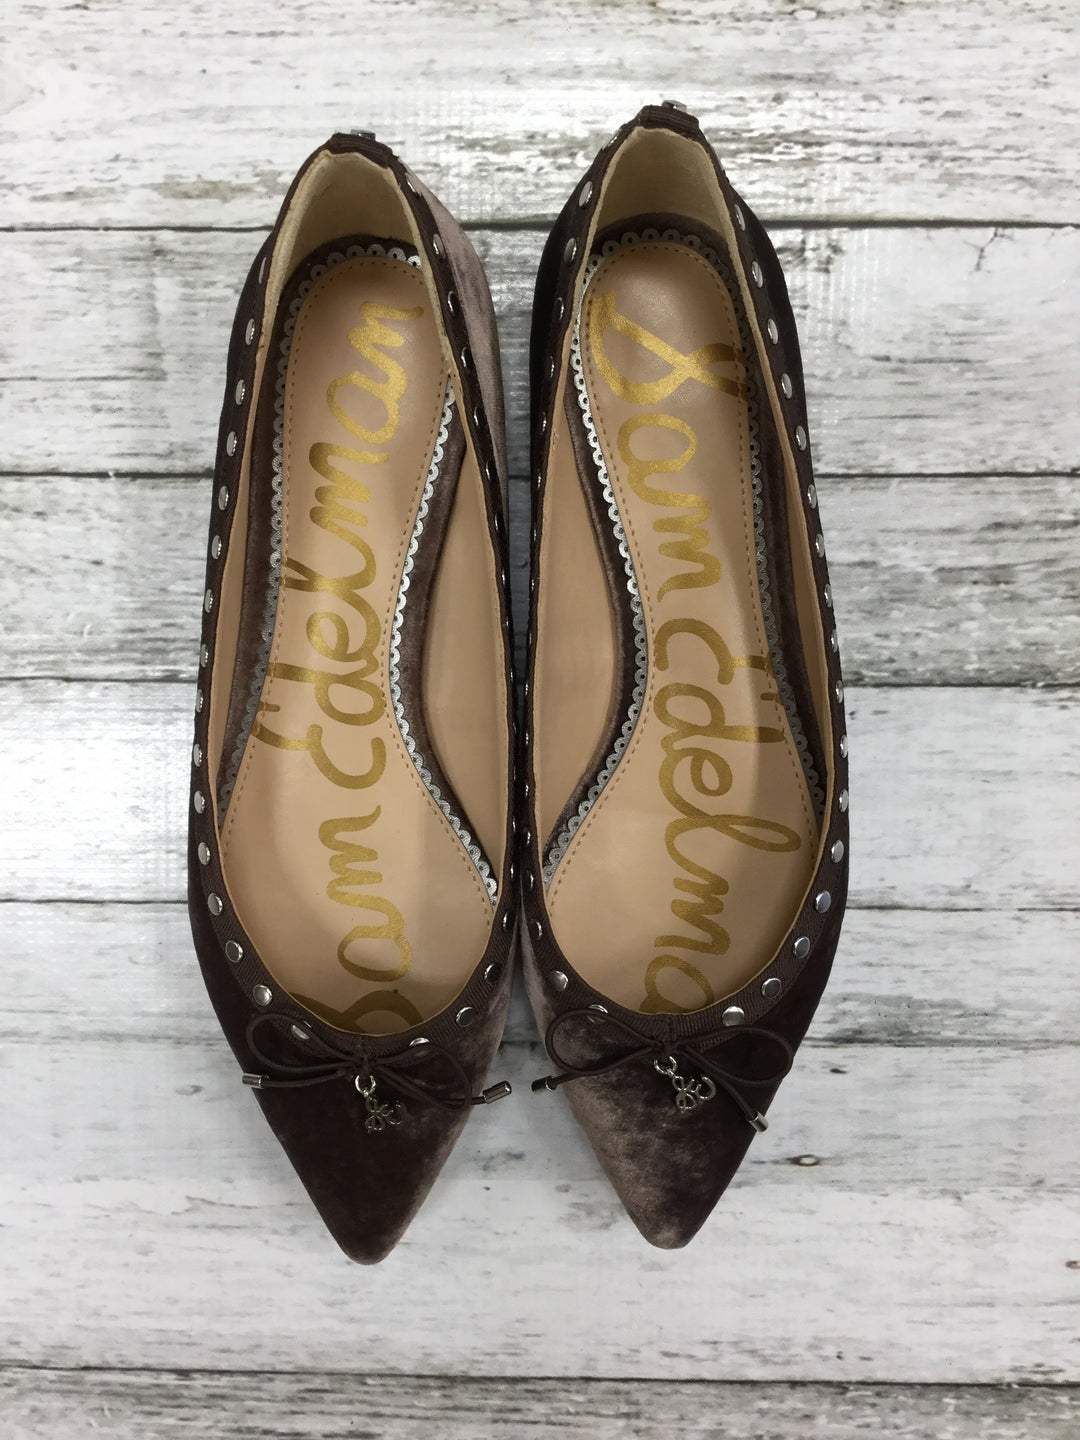 Primary Photo - BRAND: SAM EDELMAN <BR>STYLE: SHOES FLATS <BR>COLOR: BROWN <BR>SIZE: 8.5 <BR>SKU: 127-4559-14338